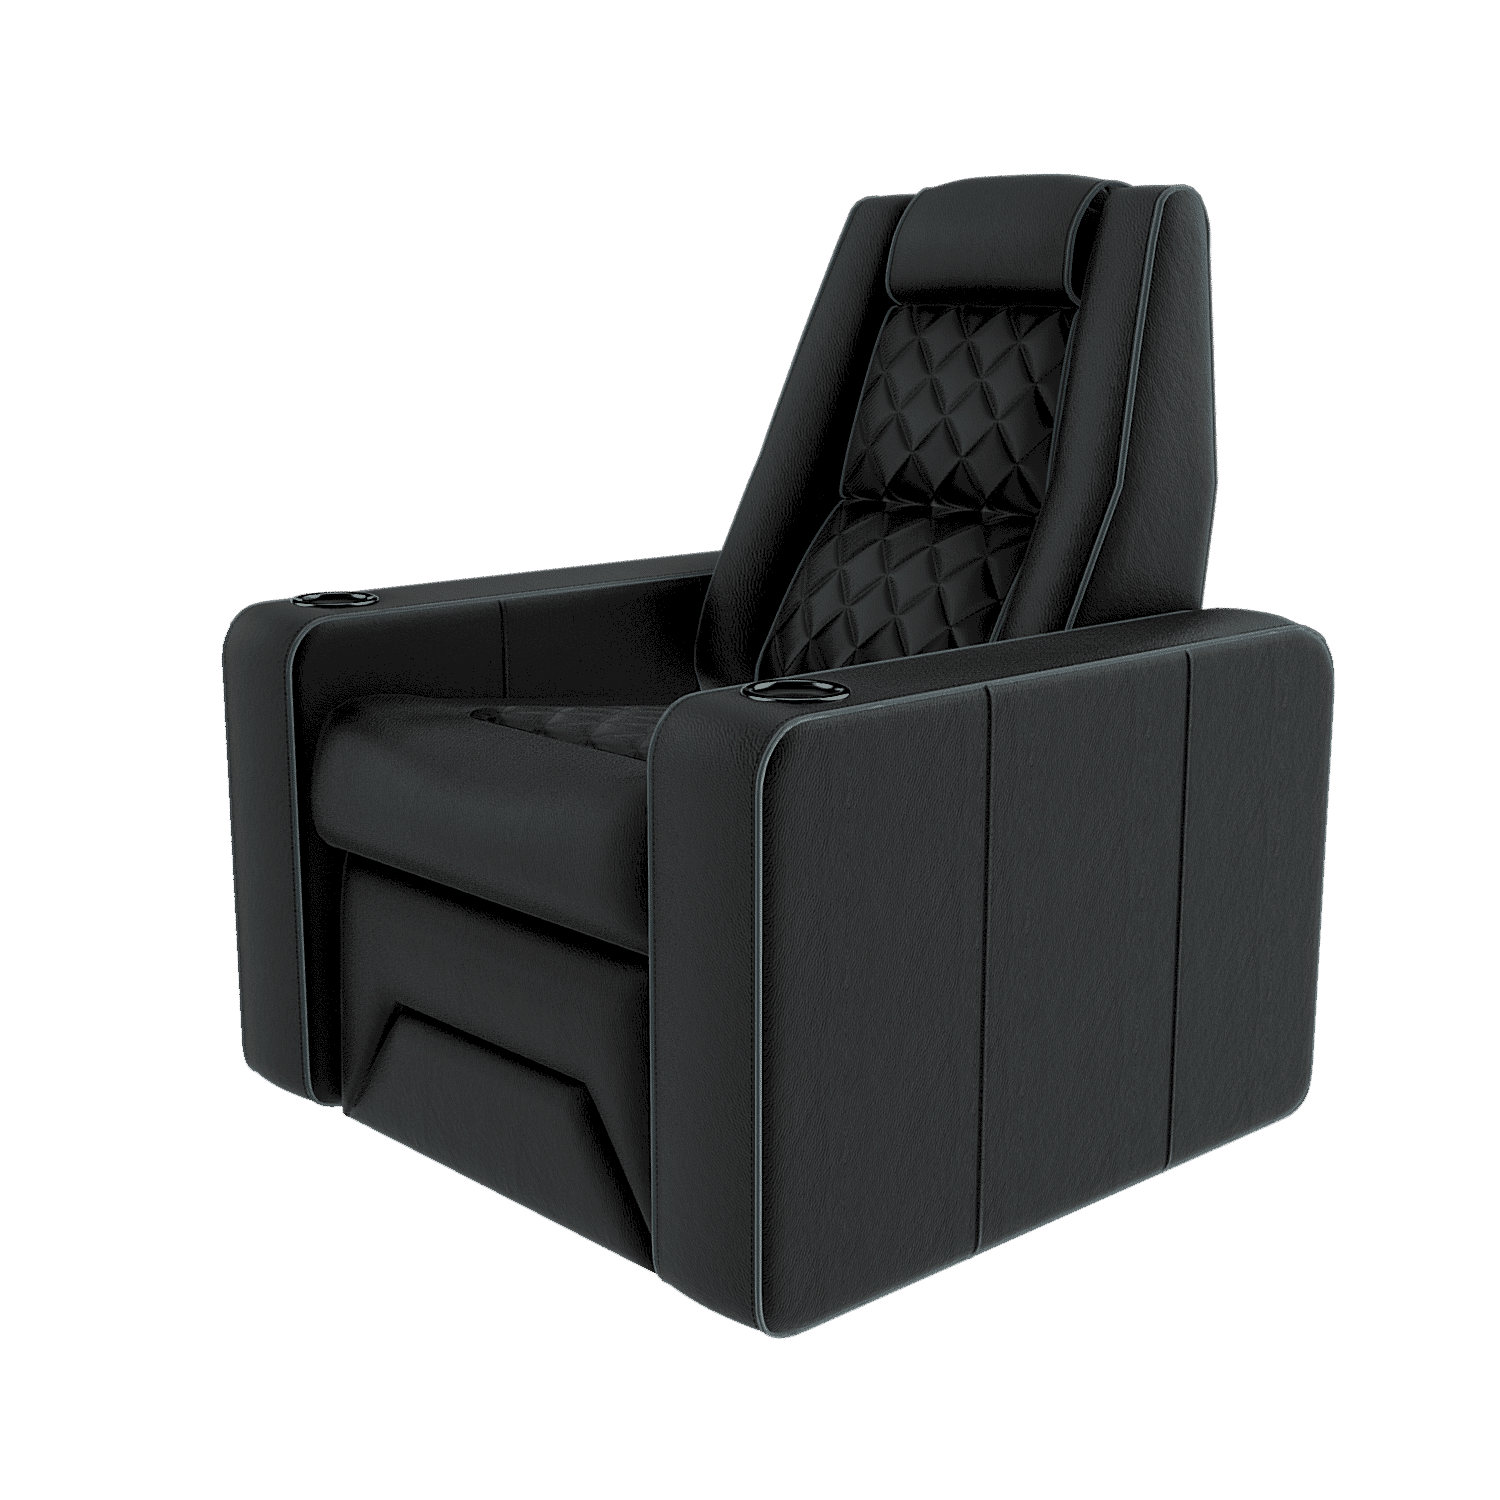 home_theatre_seating ideas n1